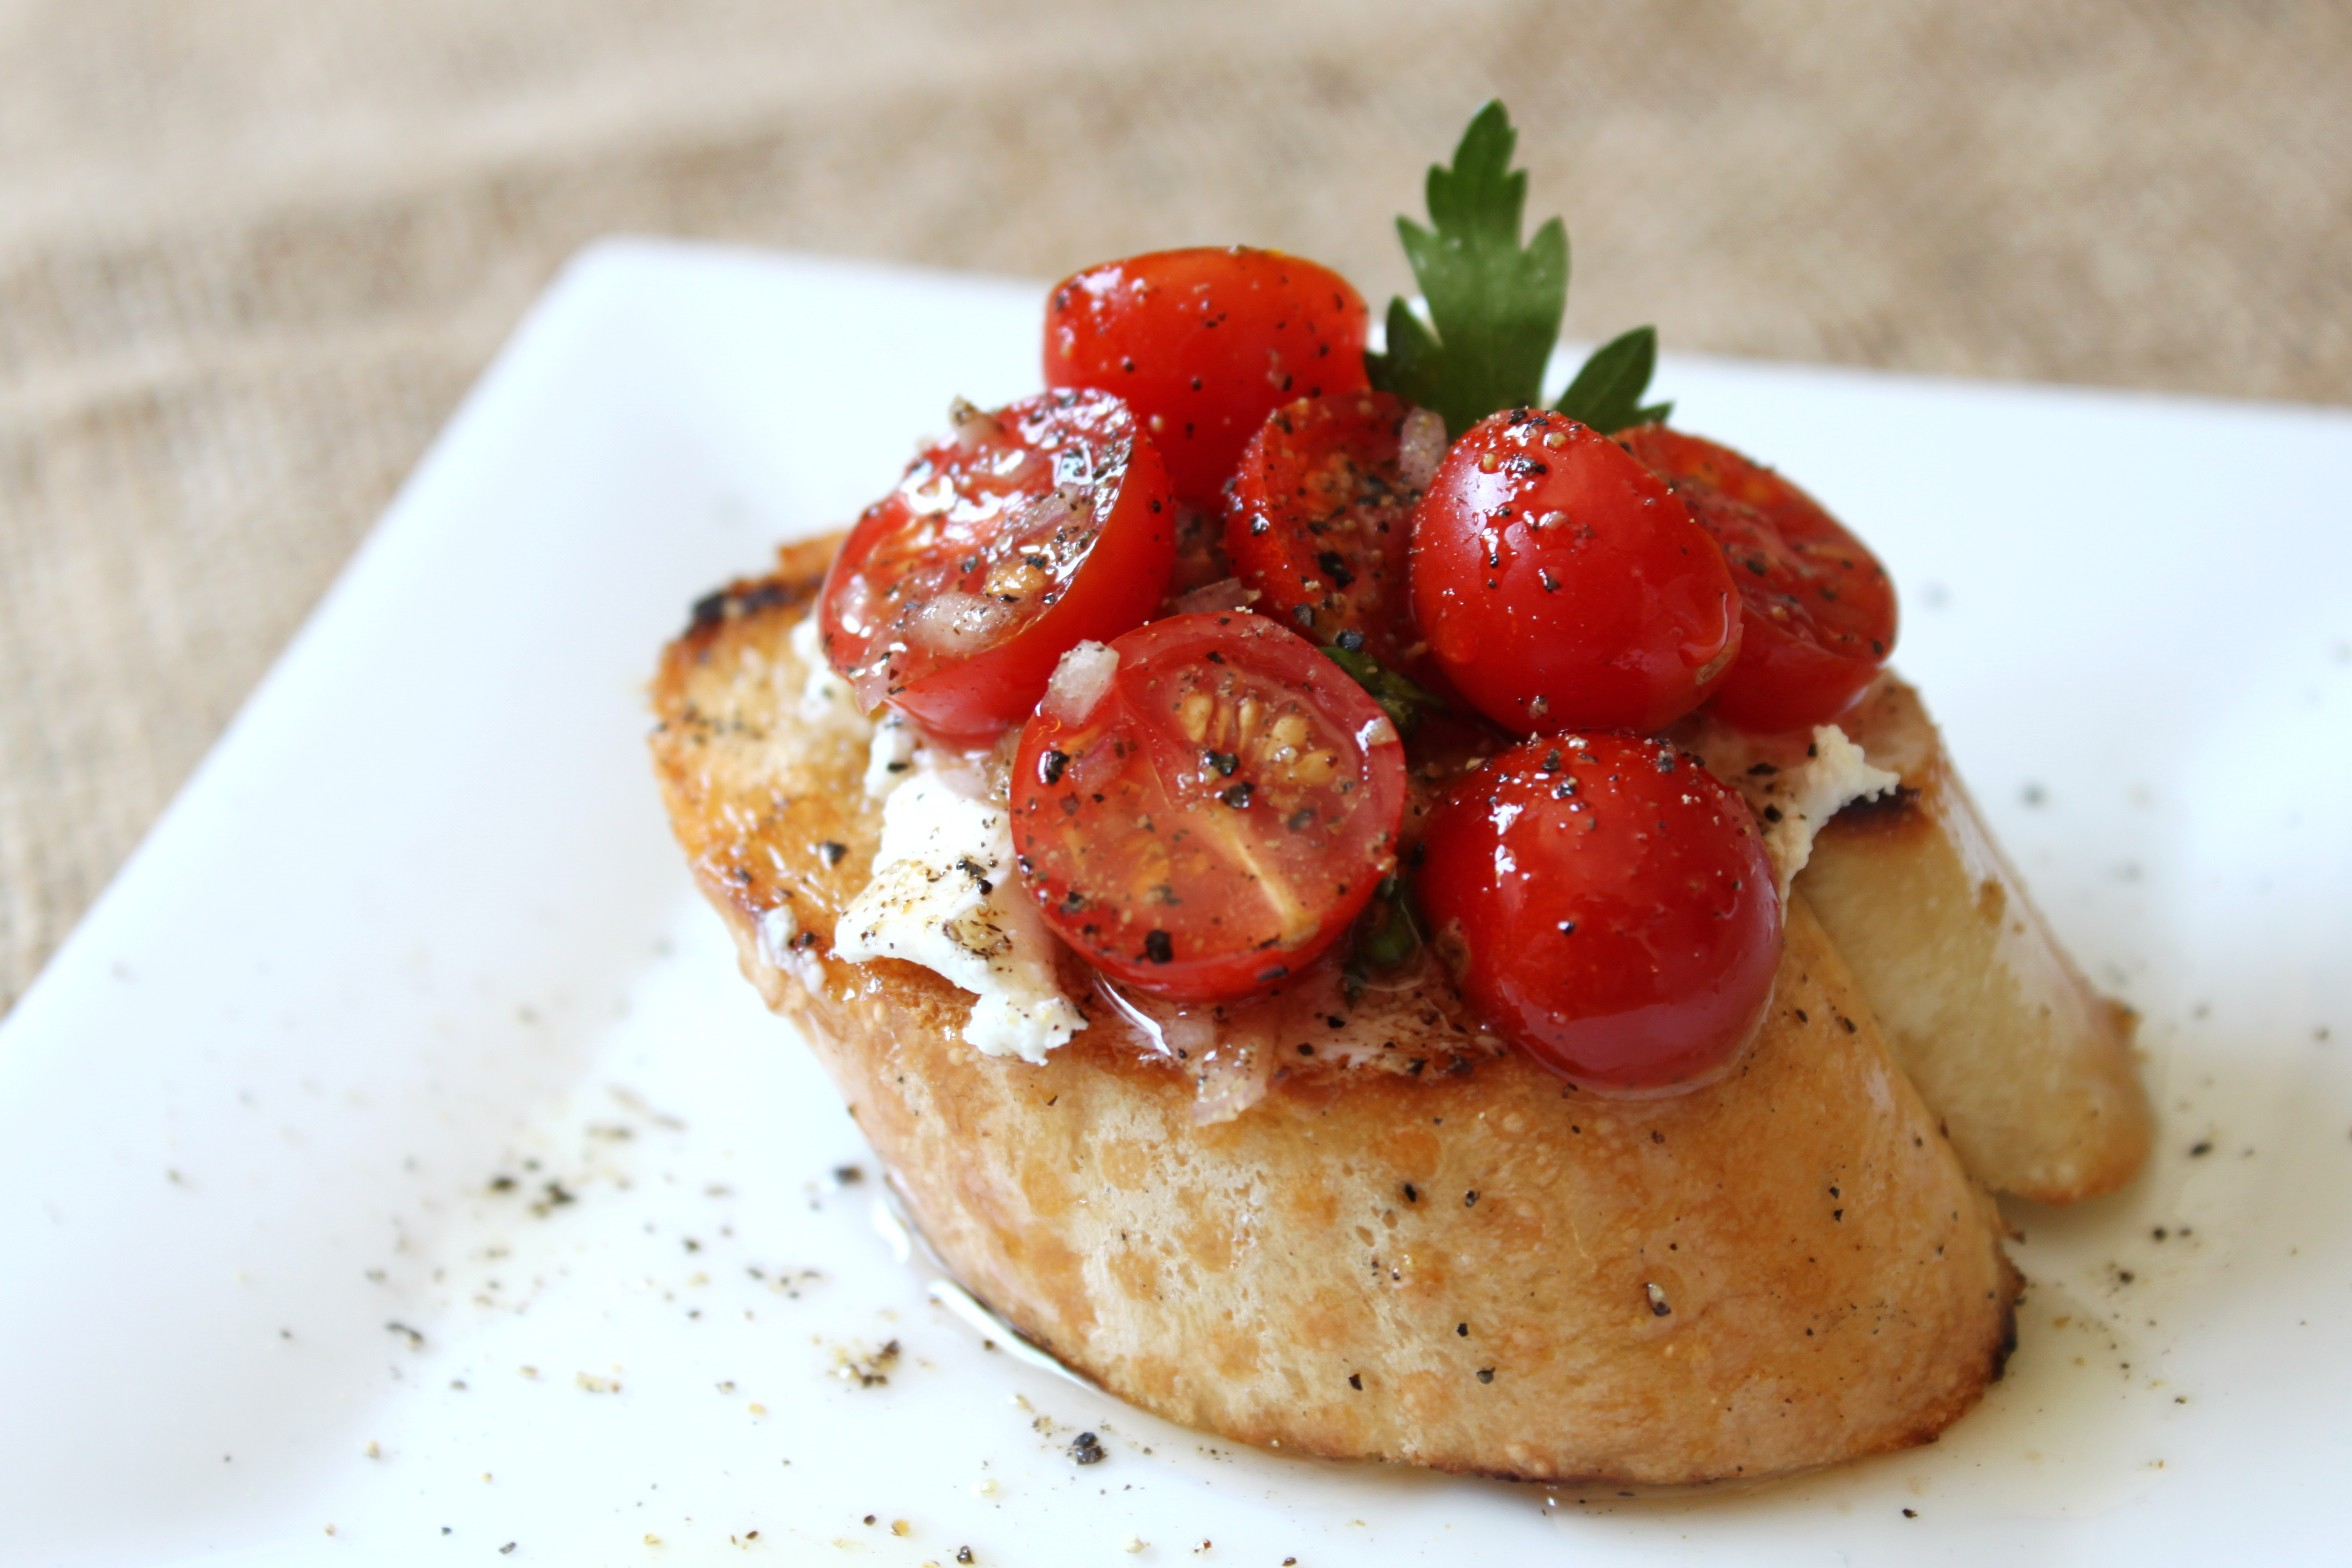 Sunkissed Tomato & Goat Cheese Toasts